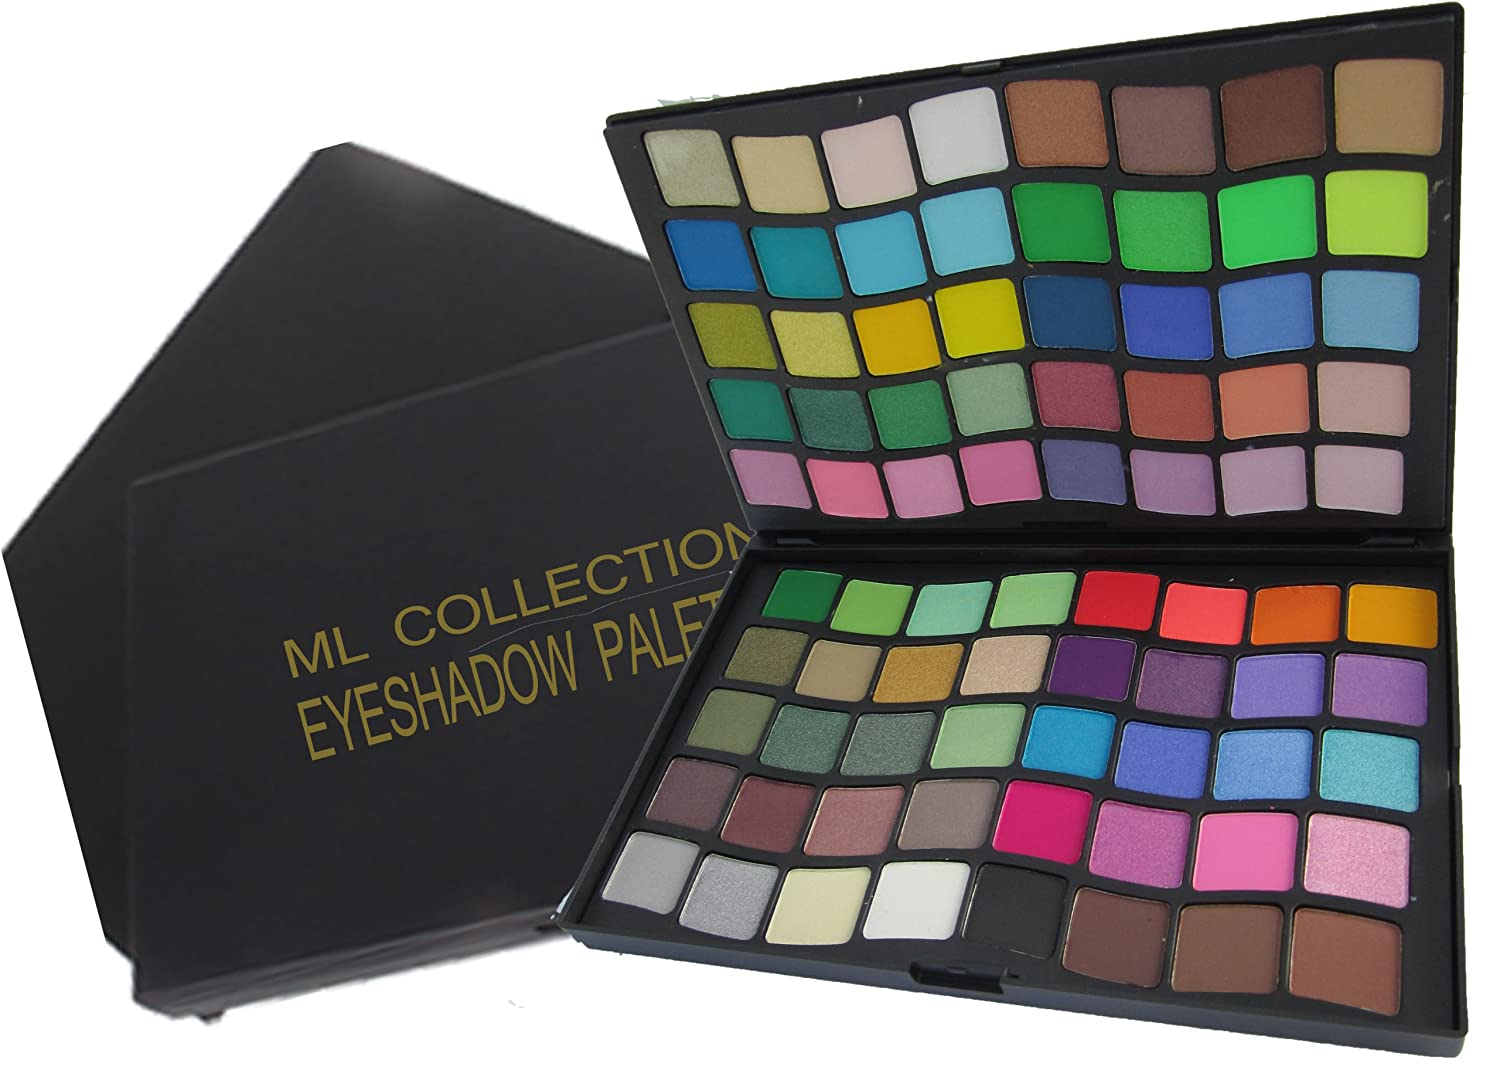 ML Collection 3D LOOK Professional Makeup 5 ☆ very popular Kit Max 74% OFF Color. FREE 80